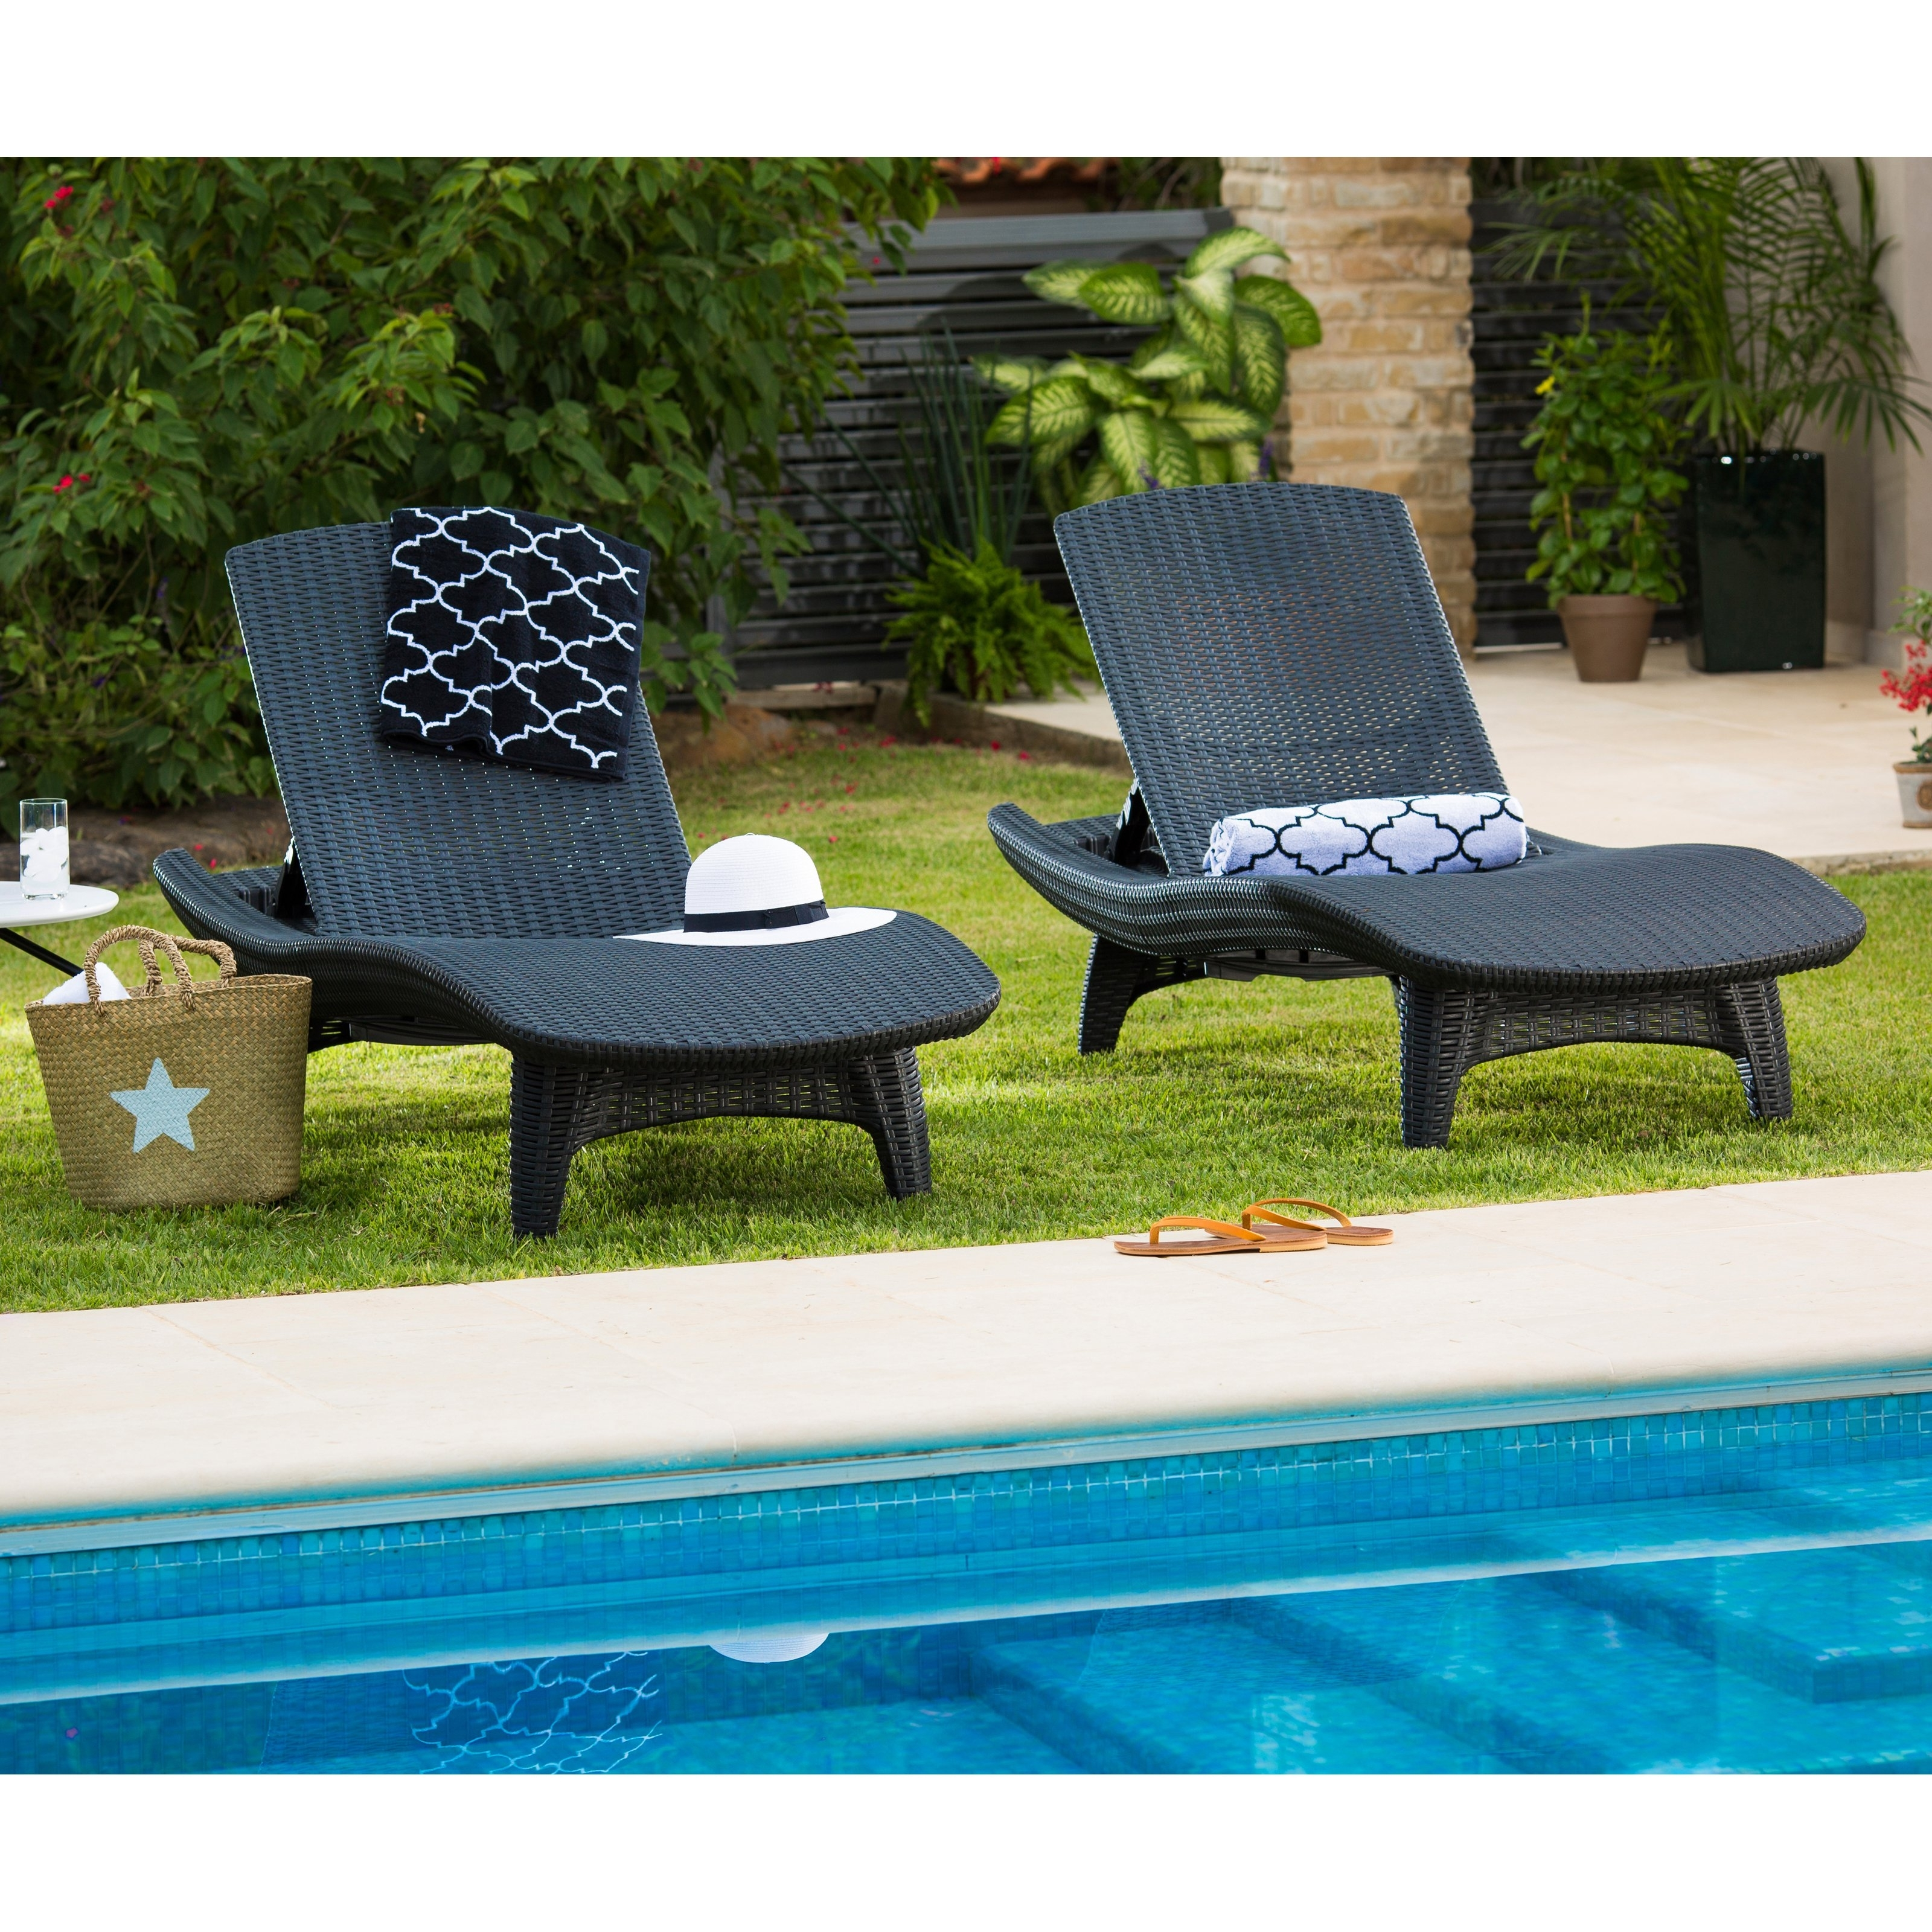 Keter Chaise Lounges Pertaining To Well Liked Keter Outdoor Chaise Lounge – Set Of 2 (Gallery 1 of 15)